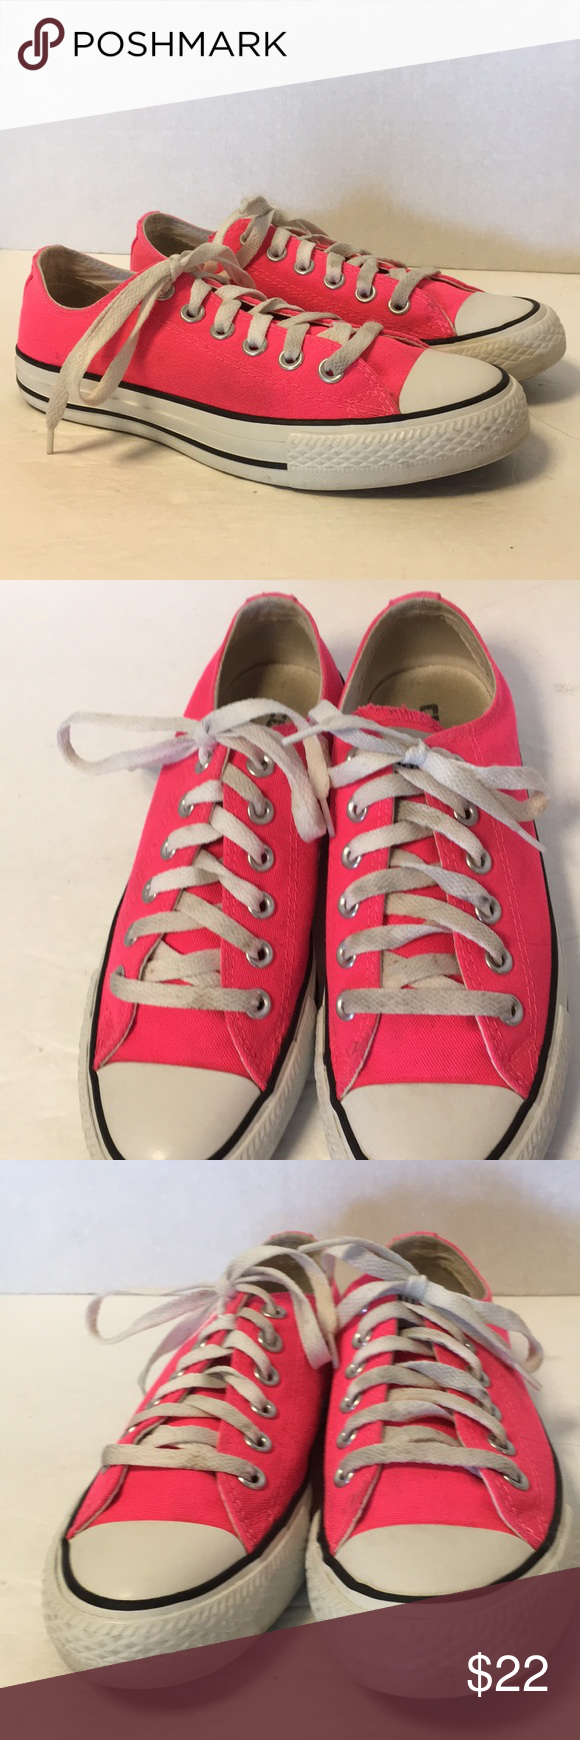 11517d875cb5 PINK Converse low rise Lace Up Sneakers Neon! Bright pink! Unisex Men s Size  5   Women s Size 7 Converse Shoes Sneakers